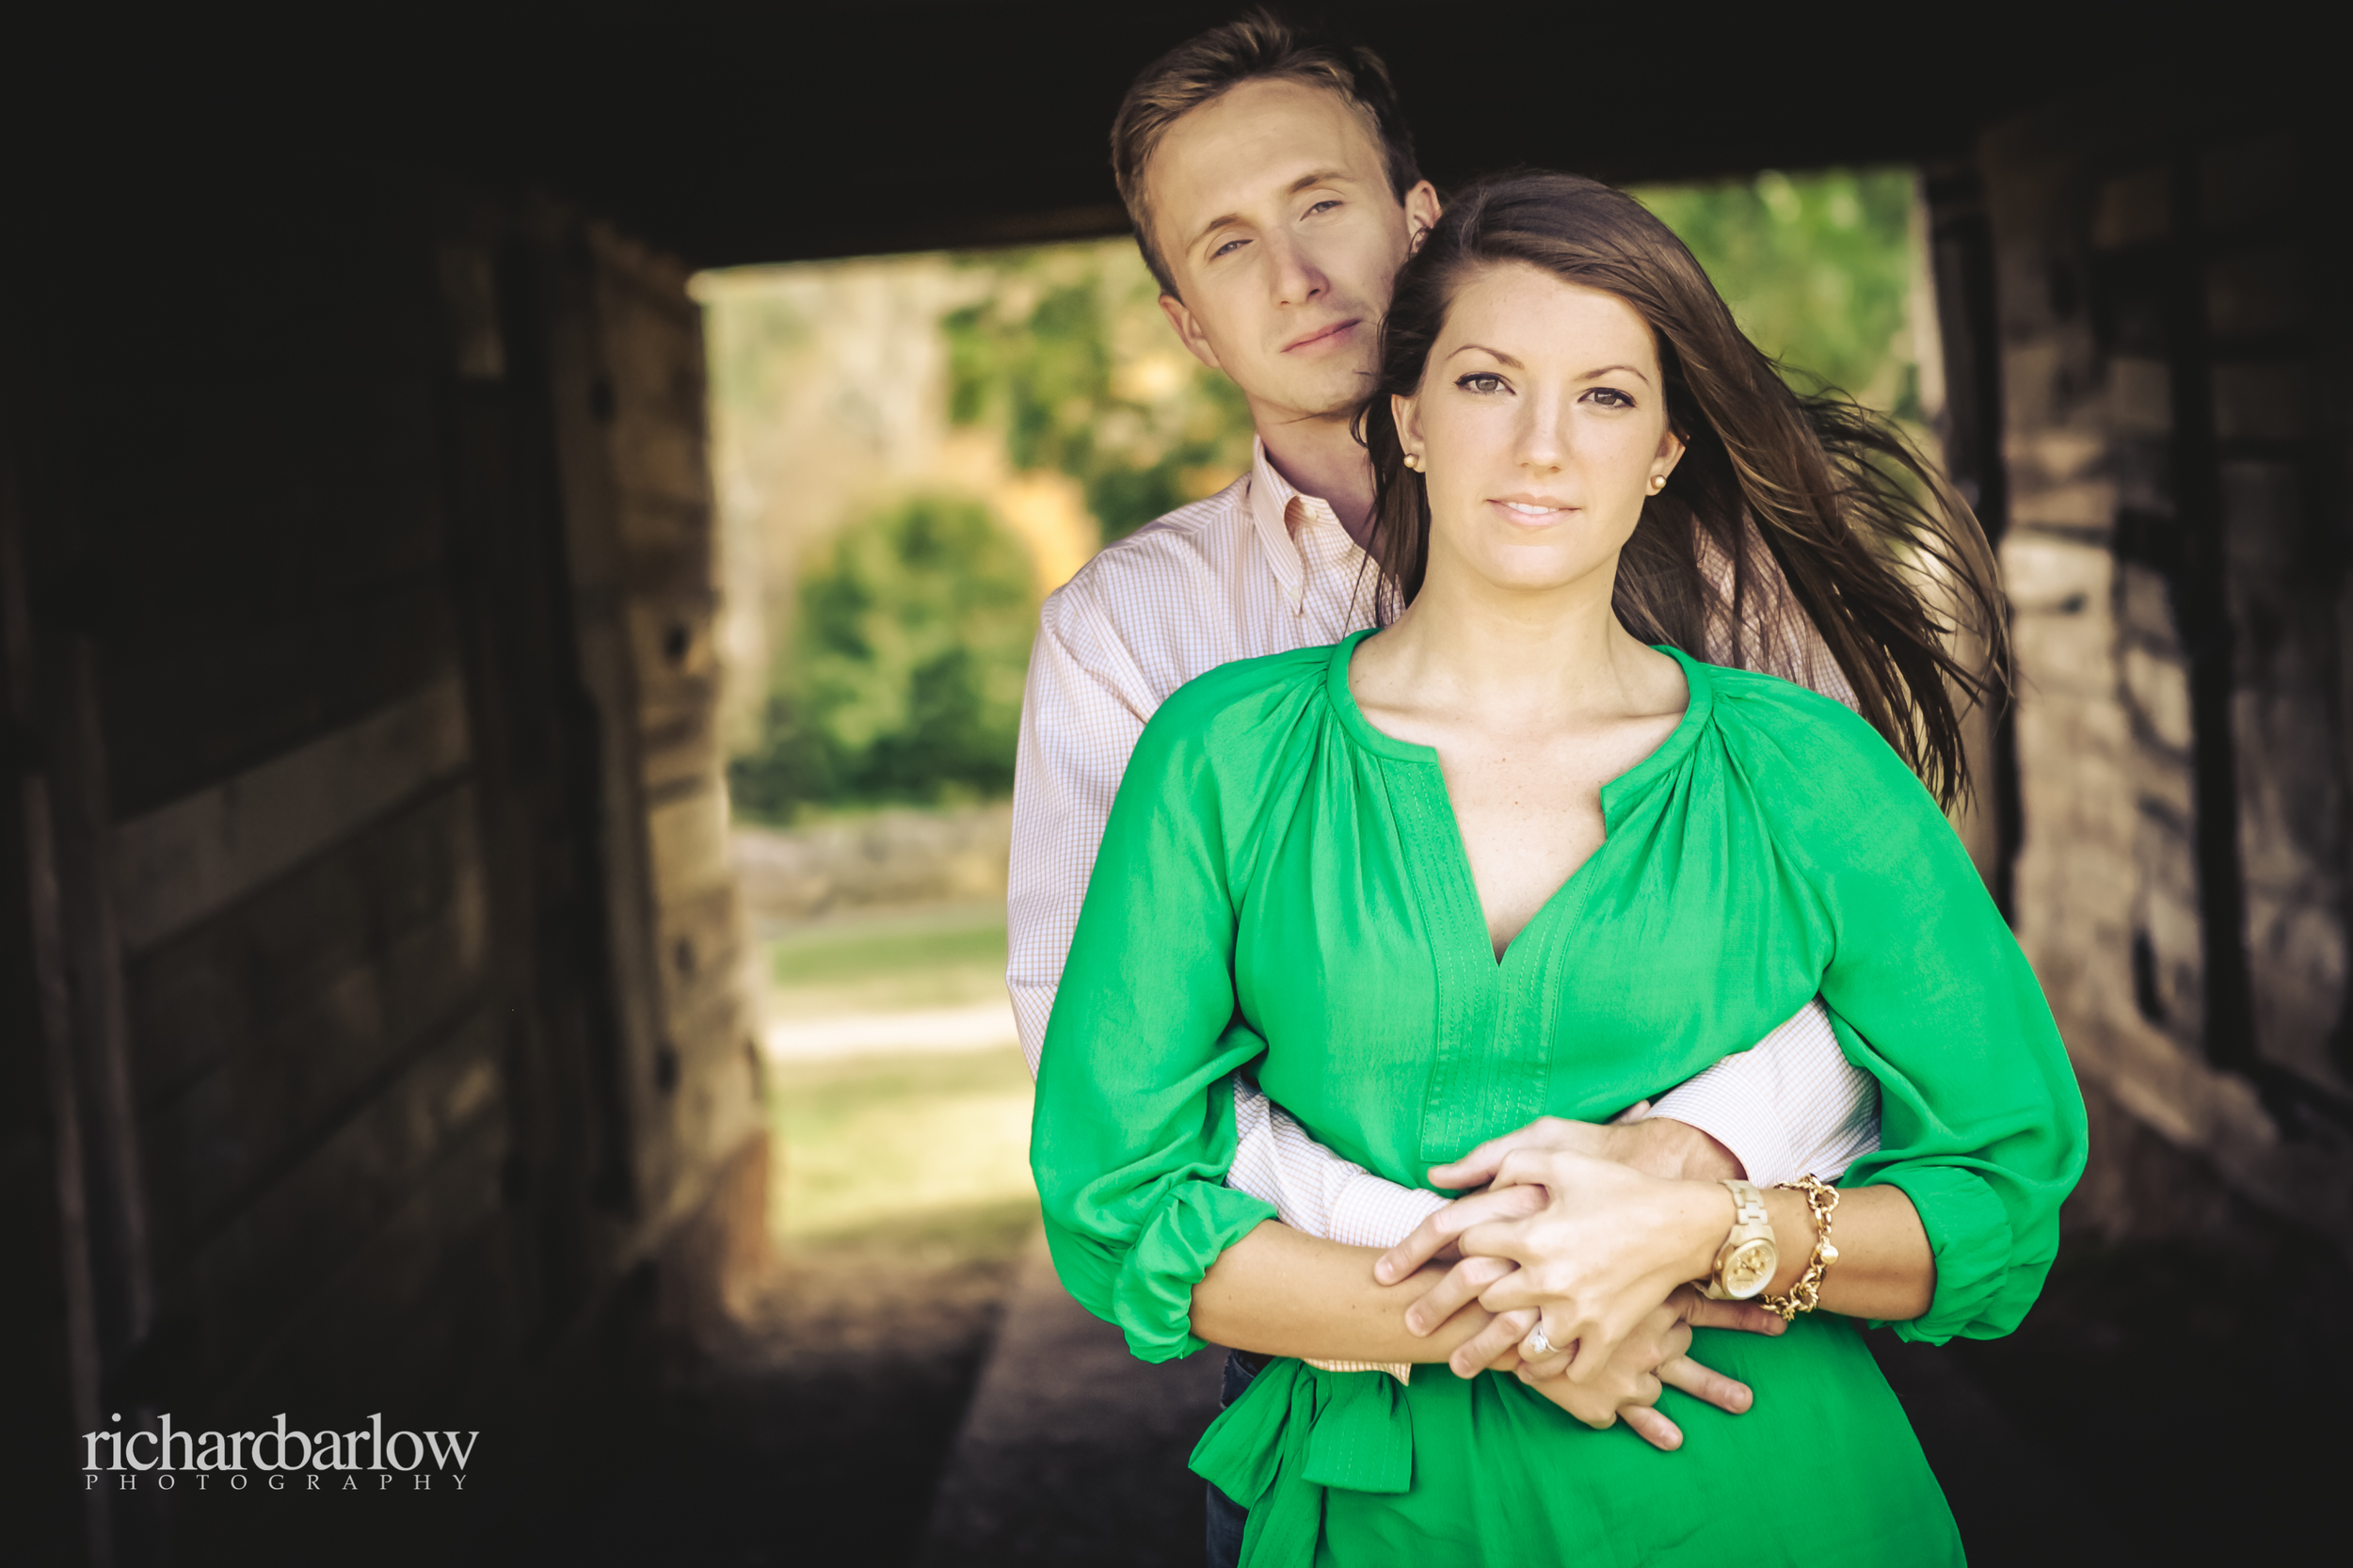 richard barlow photography - Graham and Lauren Engagement Session Wake Forest-13.jpg